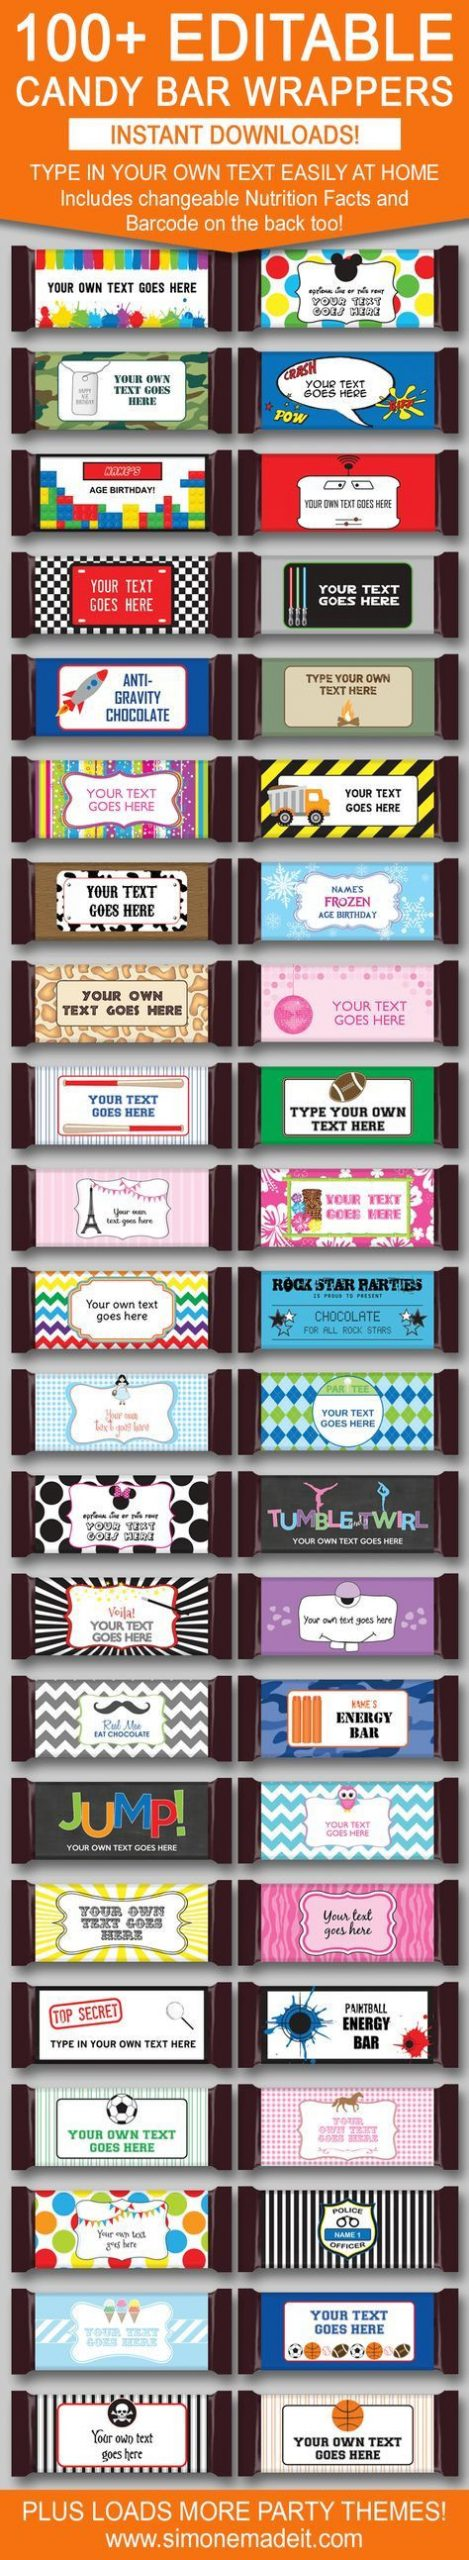 DIY Candy Bar Wrapper Templates – personalized candy bars